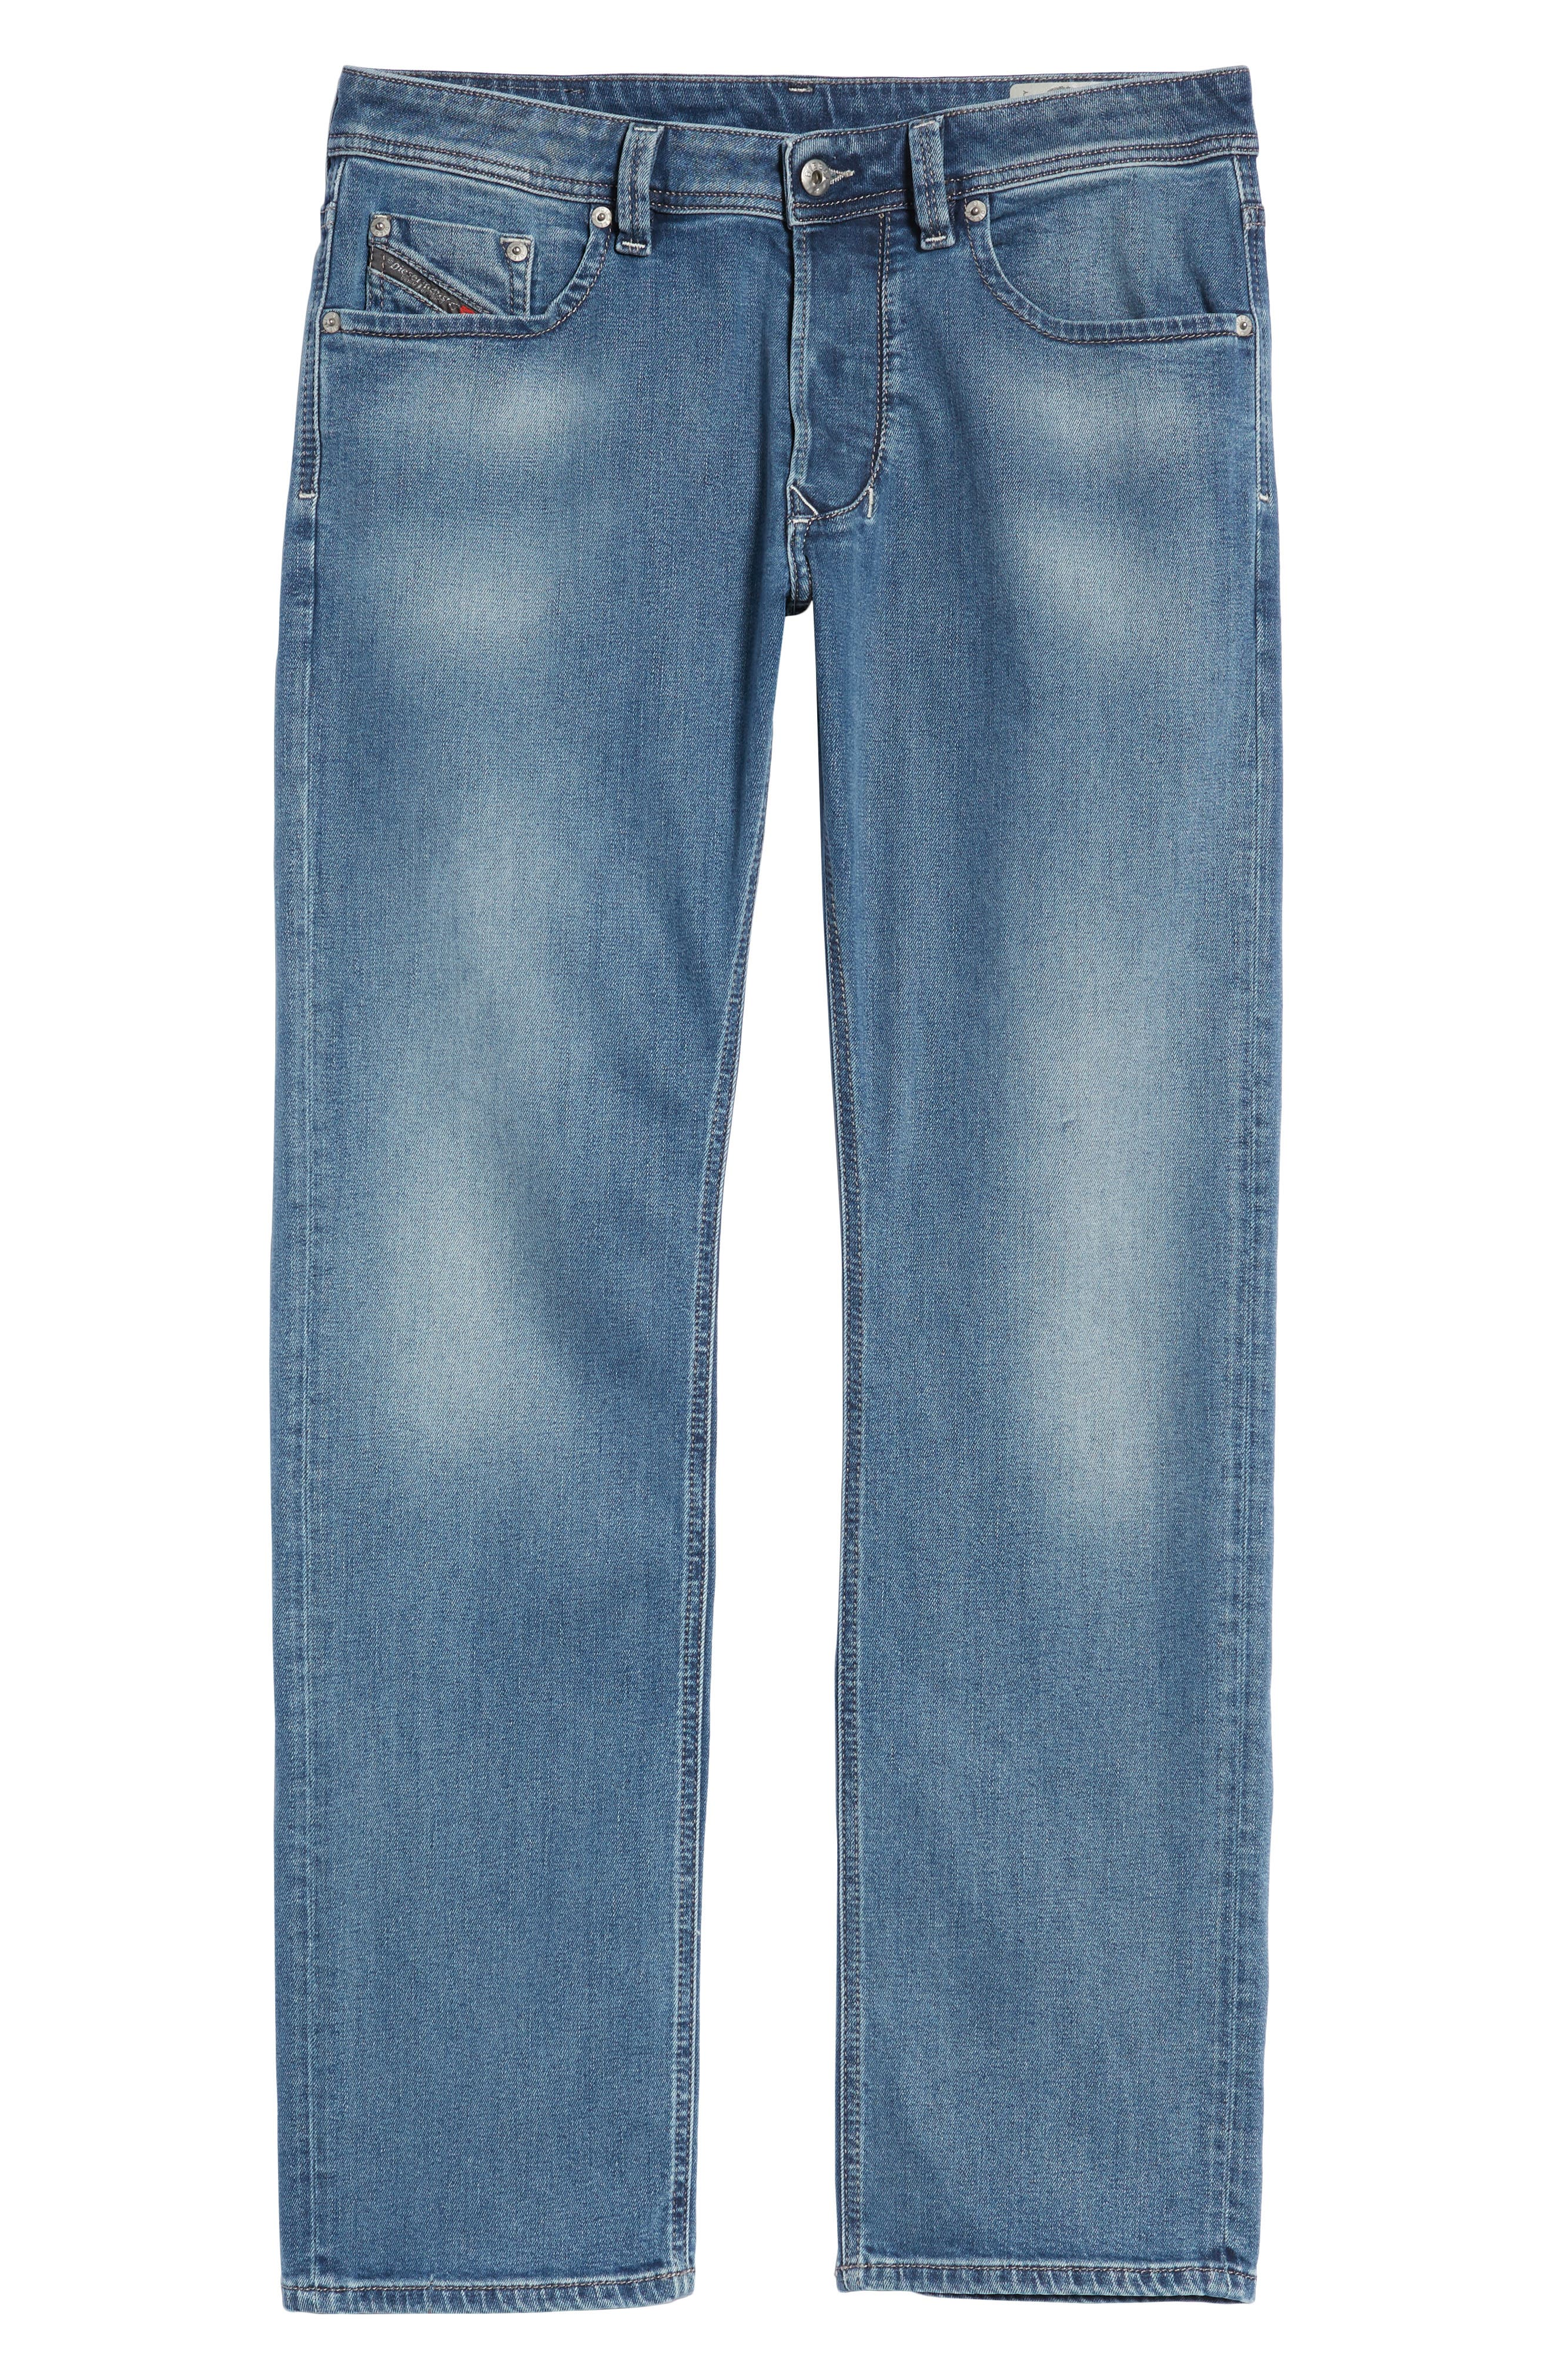 Larkee Relaxed Fit Jeans,                             Alternate thumbnail 6, color,                             084Rb